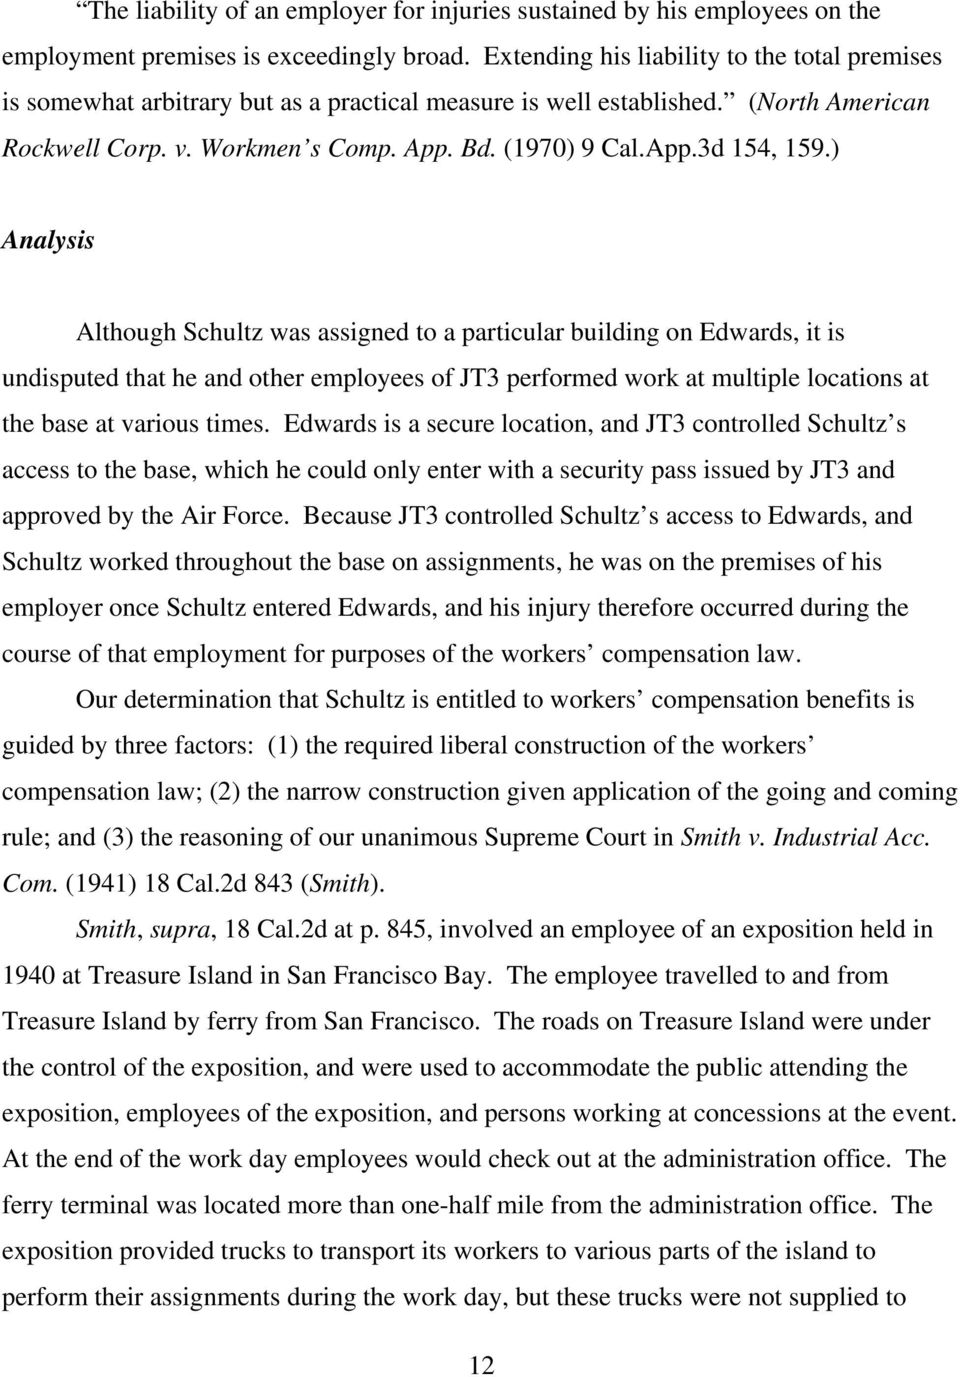 ) Analysis Although Schultz was assigned to a particular building on Edwards, it is undisputed that he and other employees of JT3 performed work at multiple locations at the base at various times.